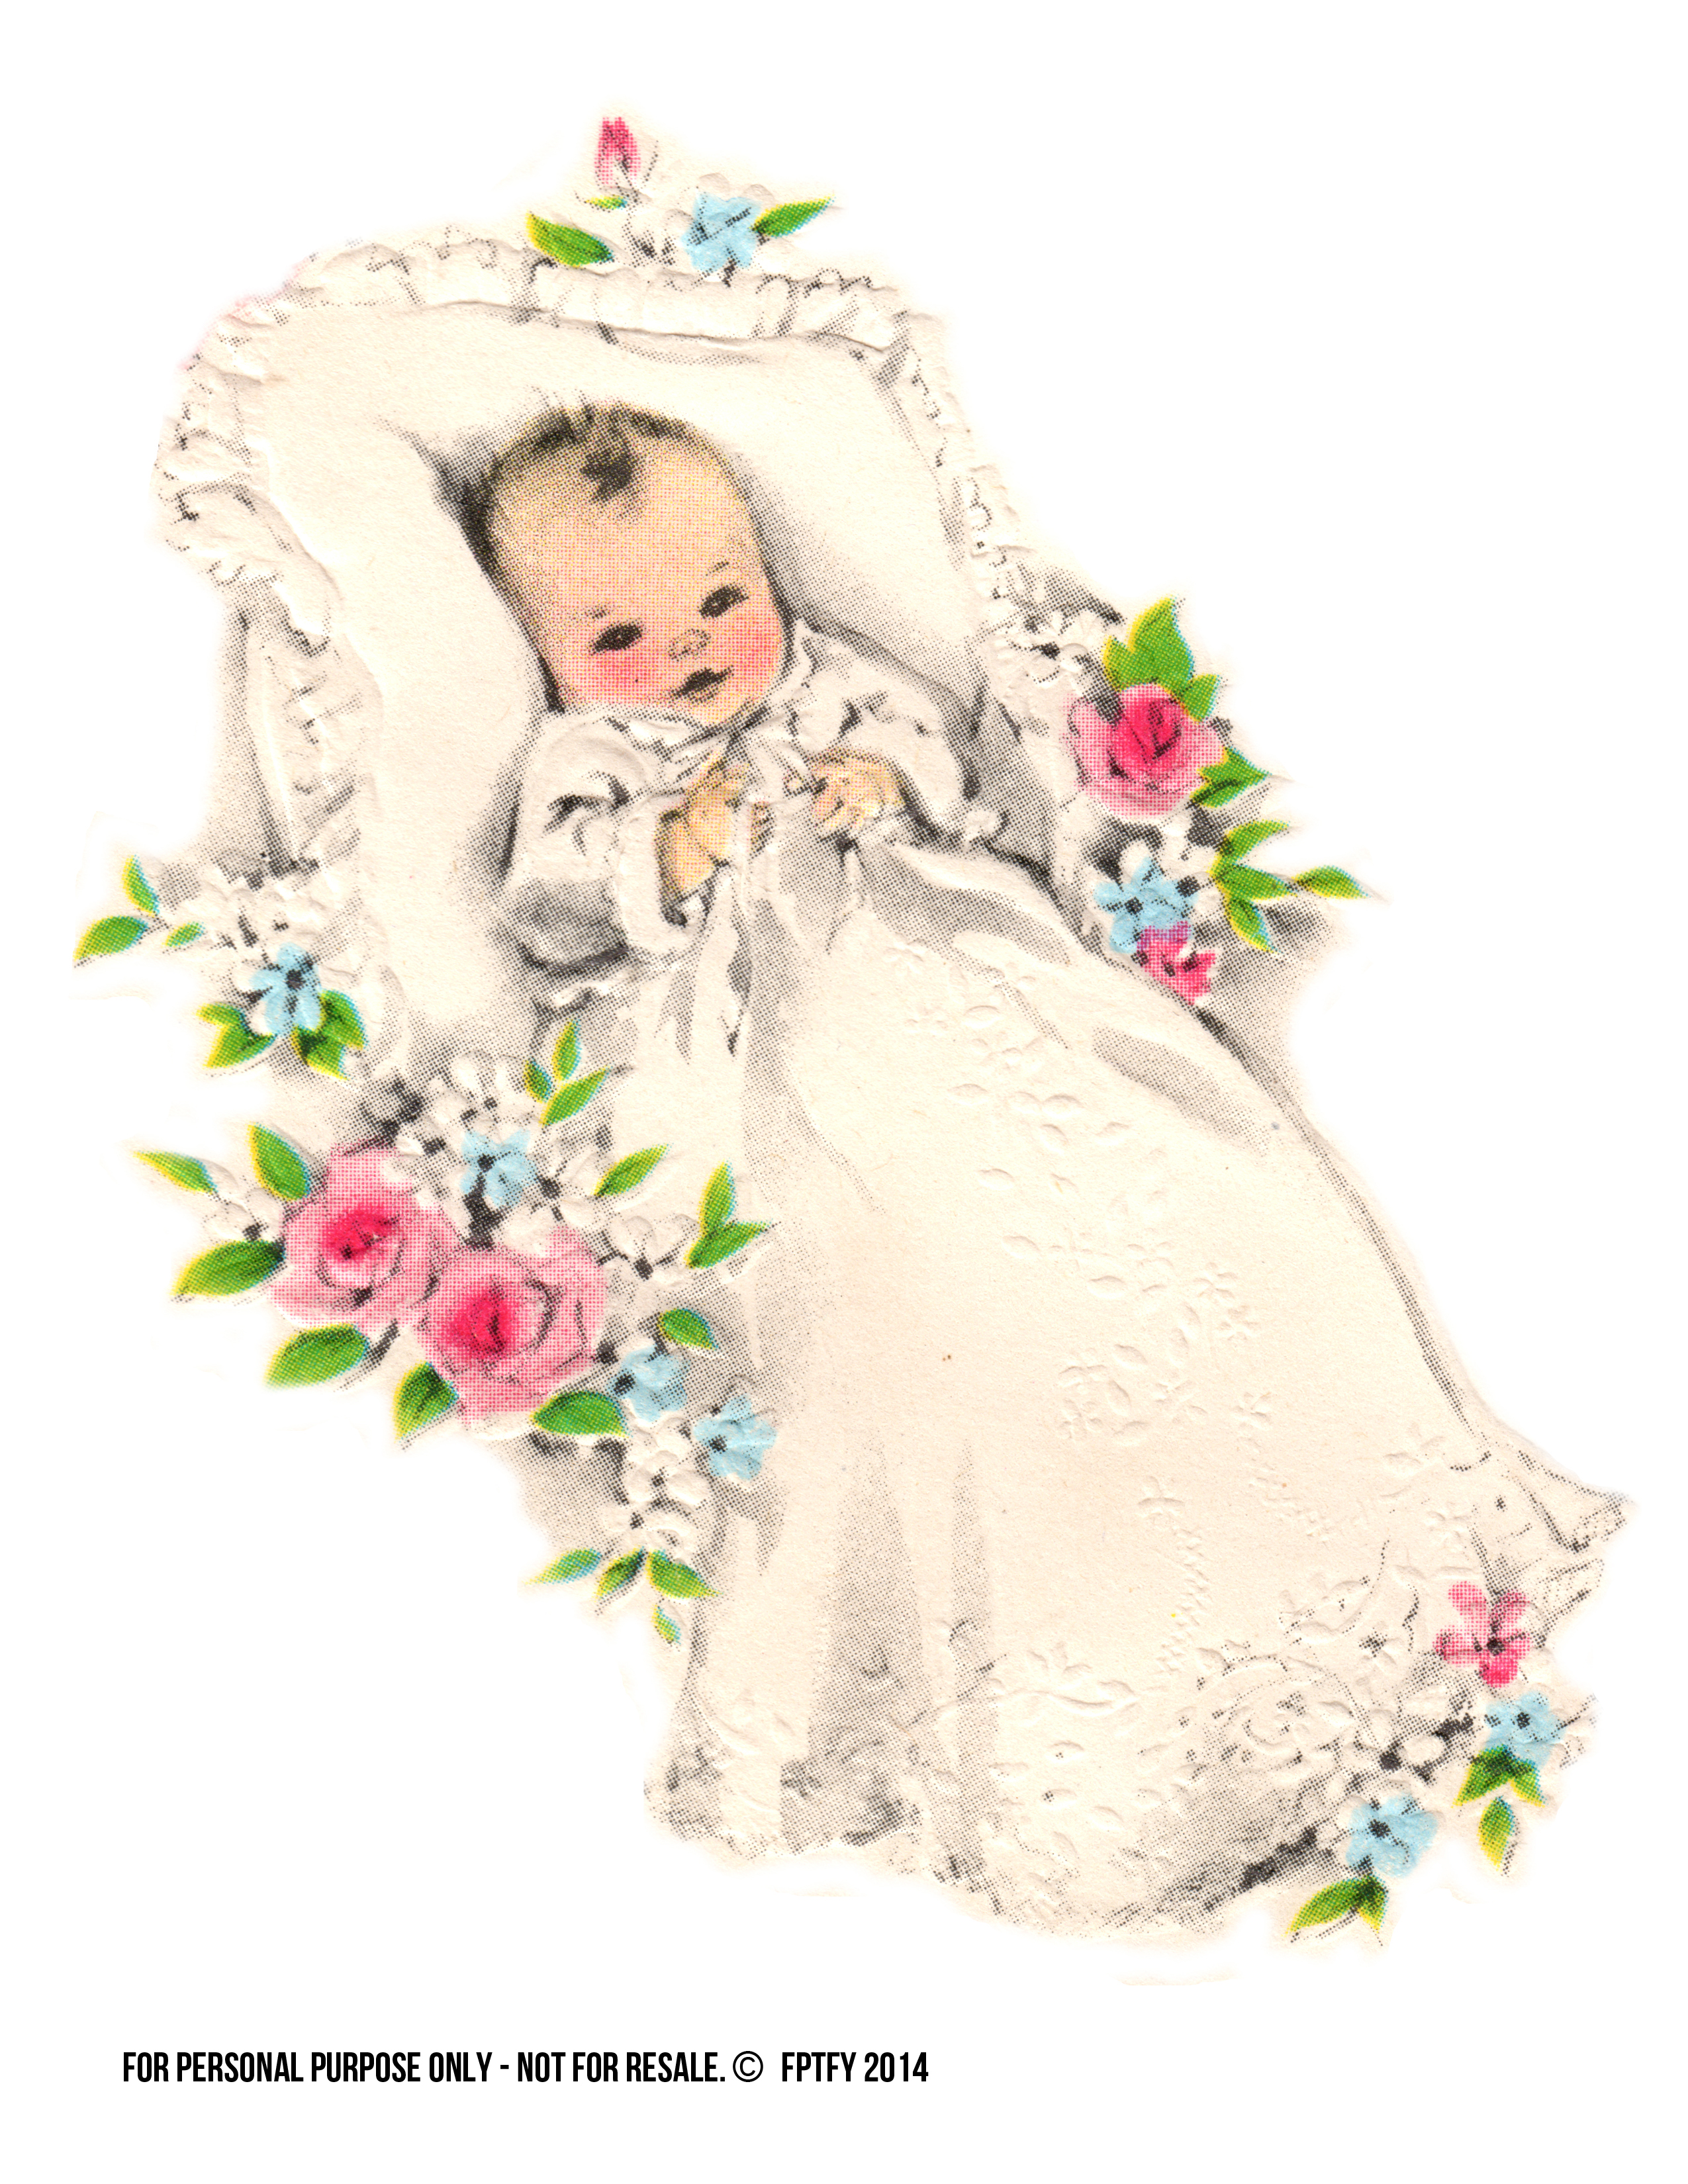 ... free-vintage-baby-clipart-by-fptfy-2